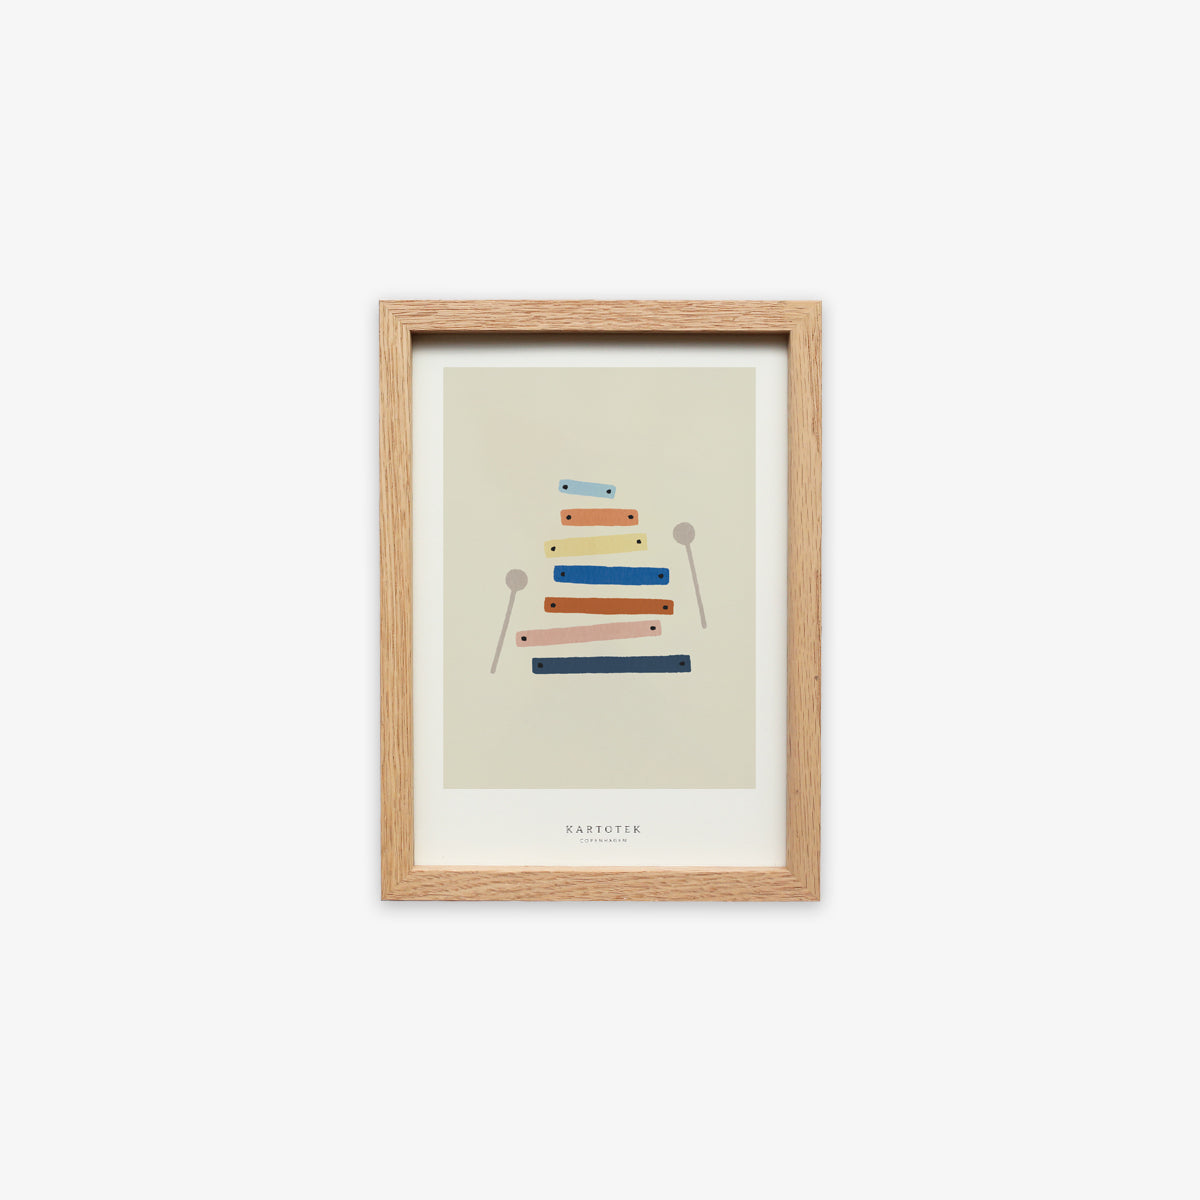 OAK WOOD FRAME + CARD A5 // XYLOPHONE